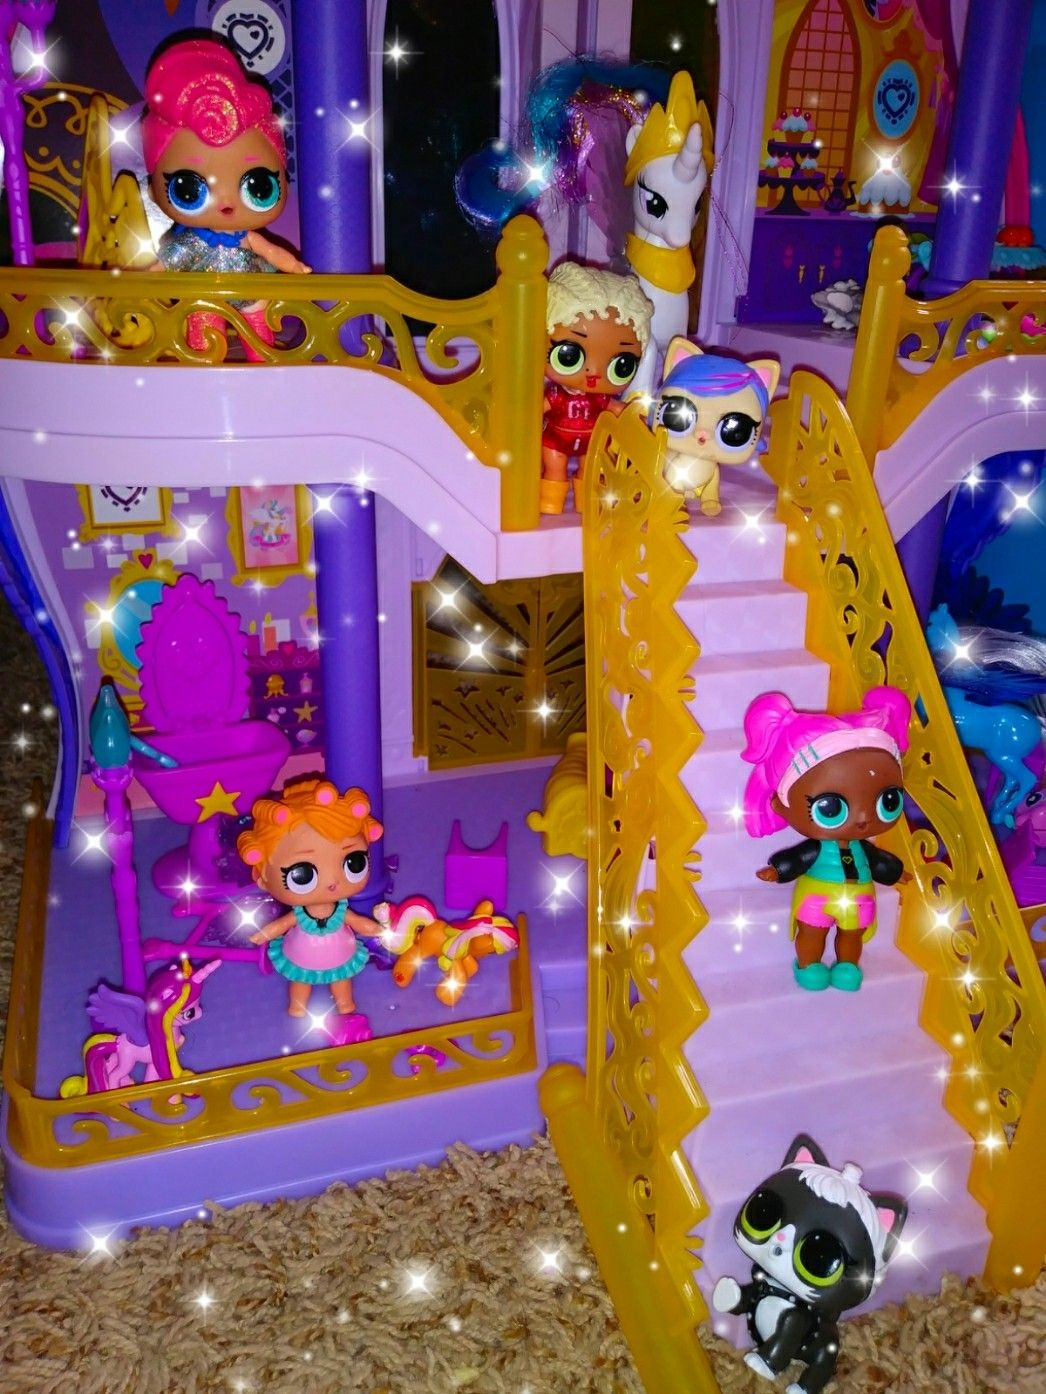 Lol Surprise Doll House My Daughter S Lol Surprise Doll House